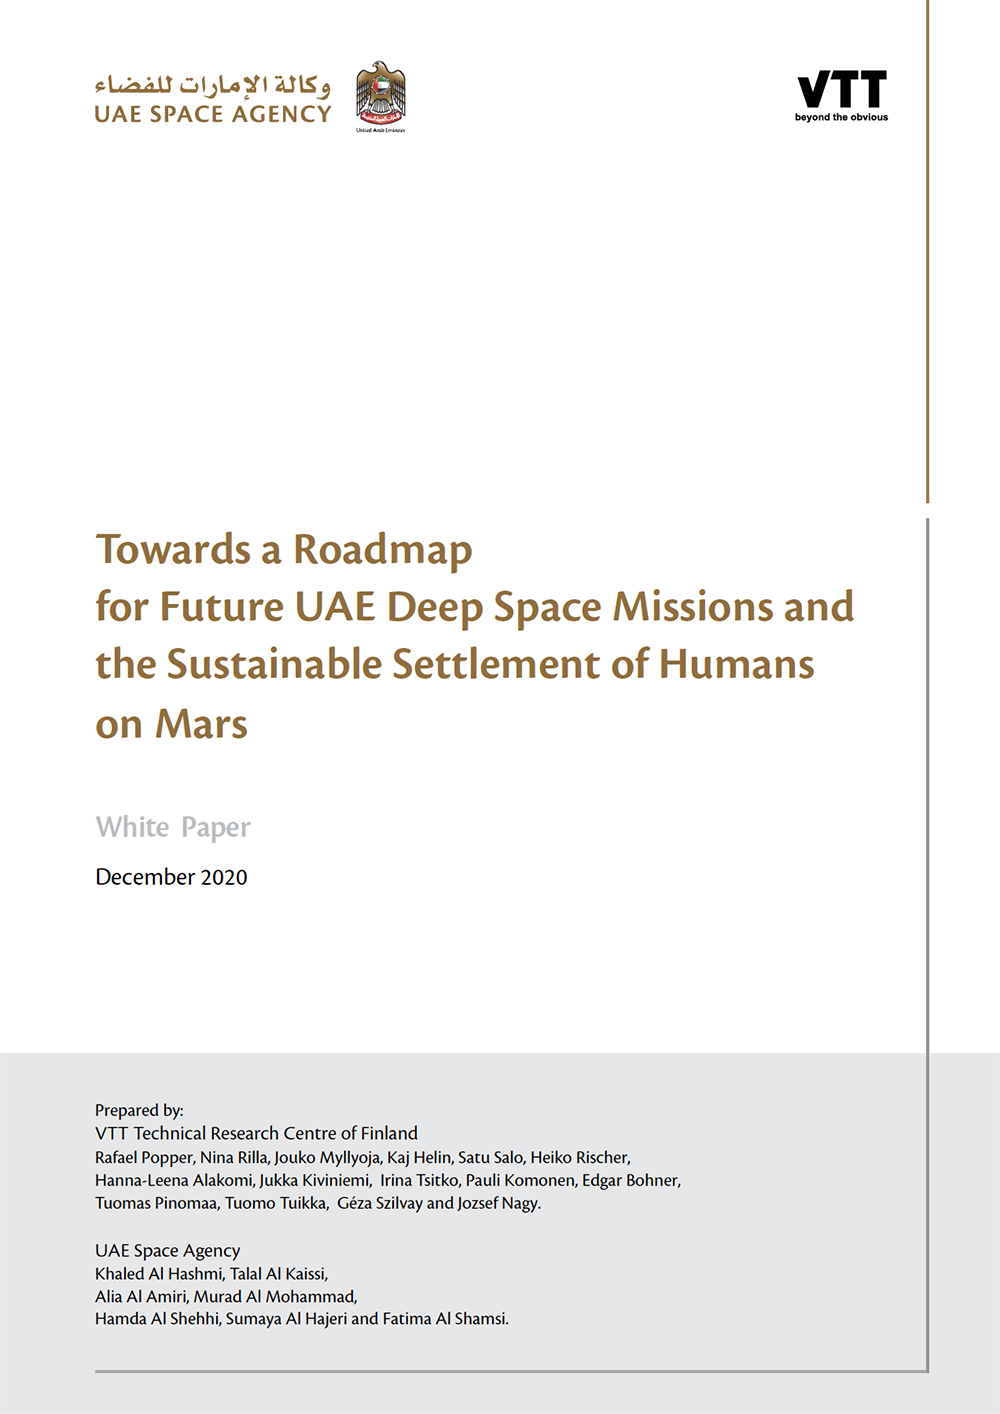 Towards a Roadmap for Future UAE Deep Space Missions and the Sustainable Settlement of Humans on Mars (Popper et al., 2020)